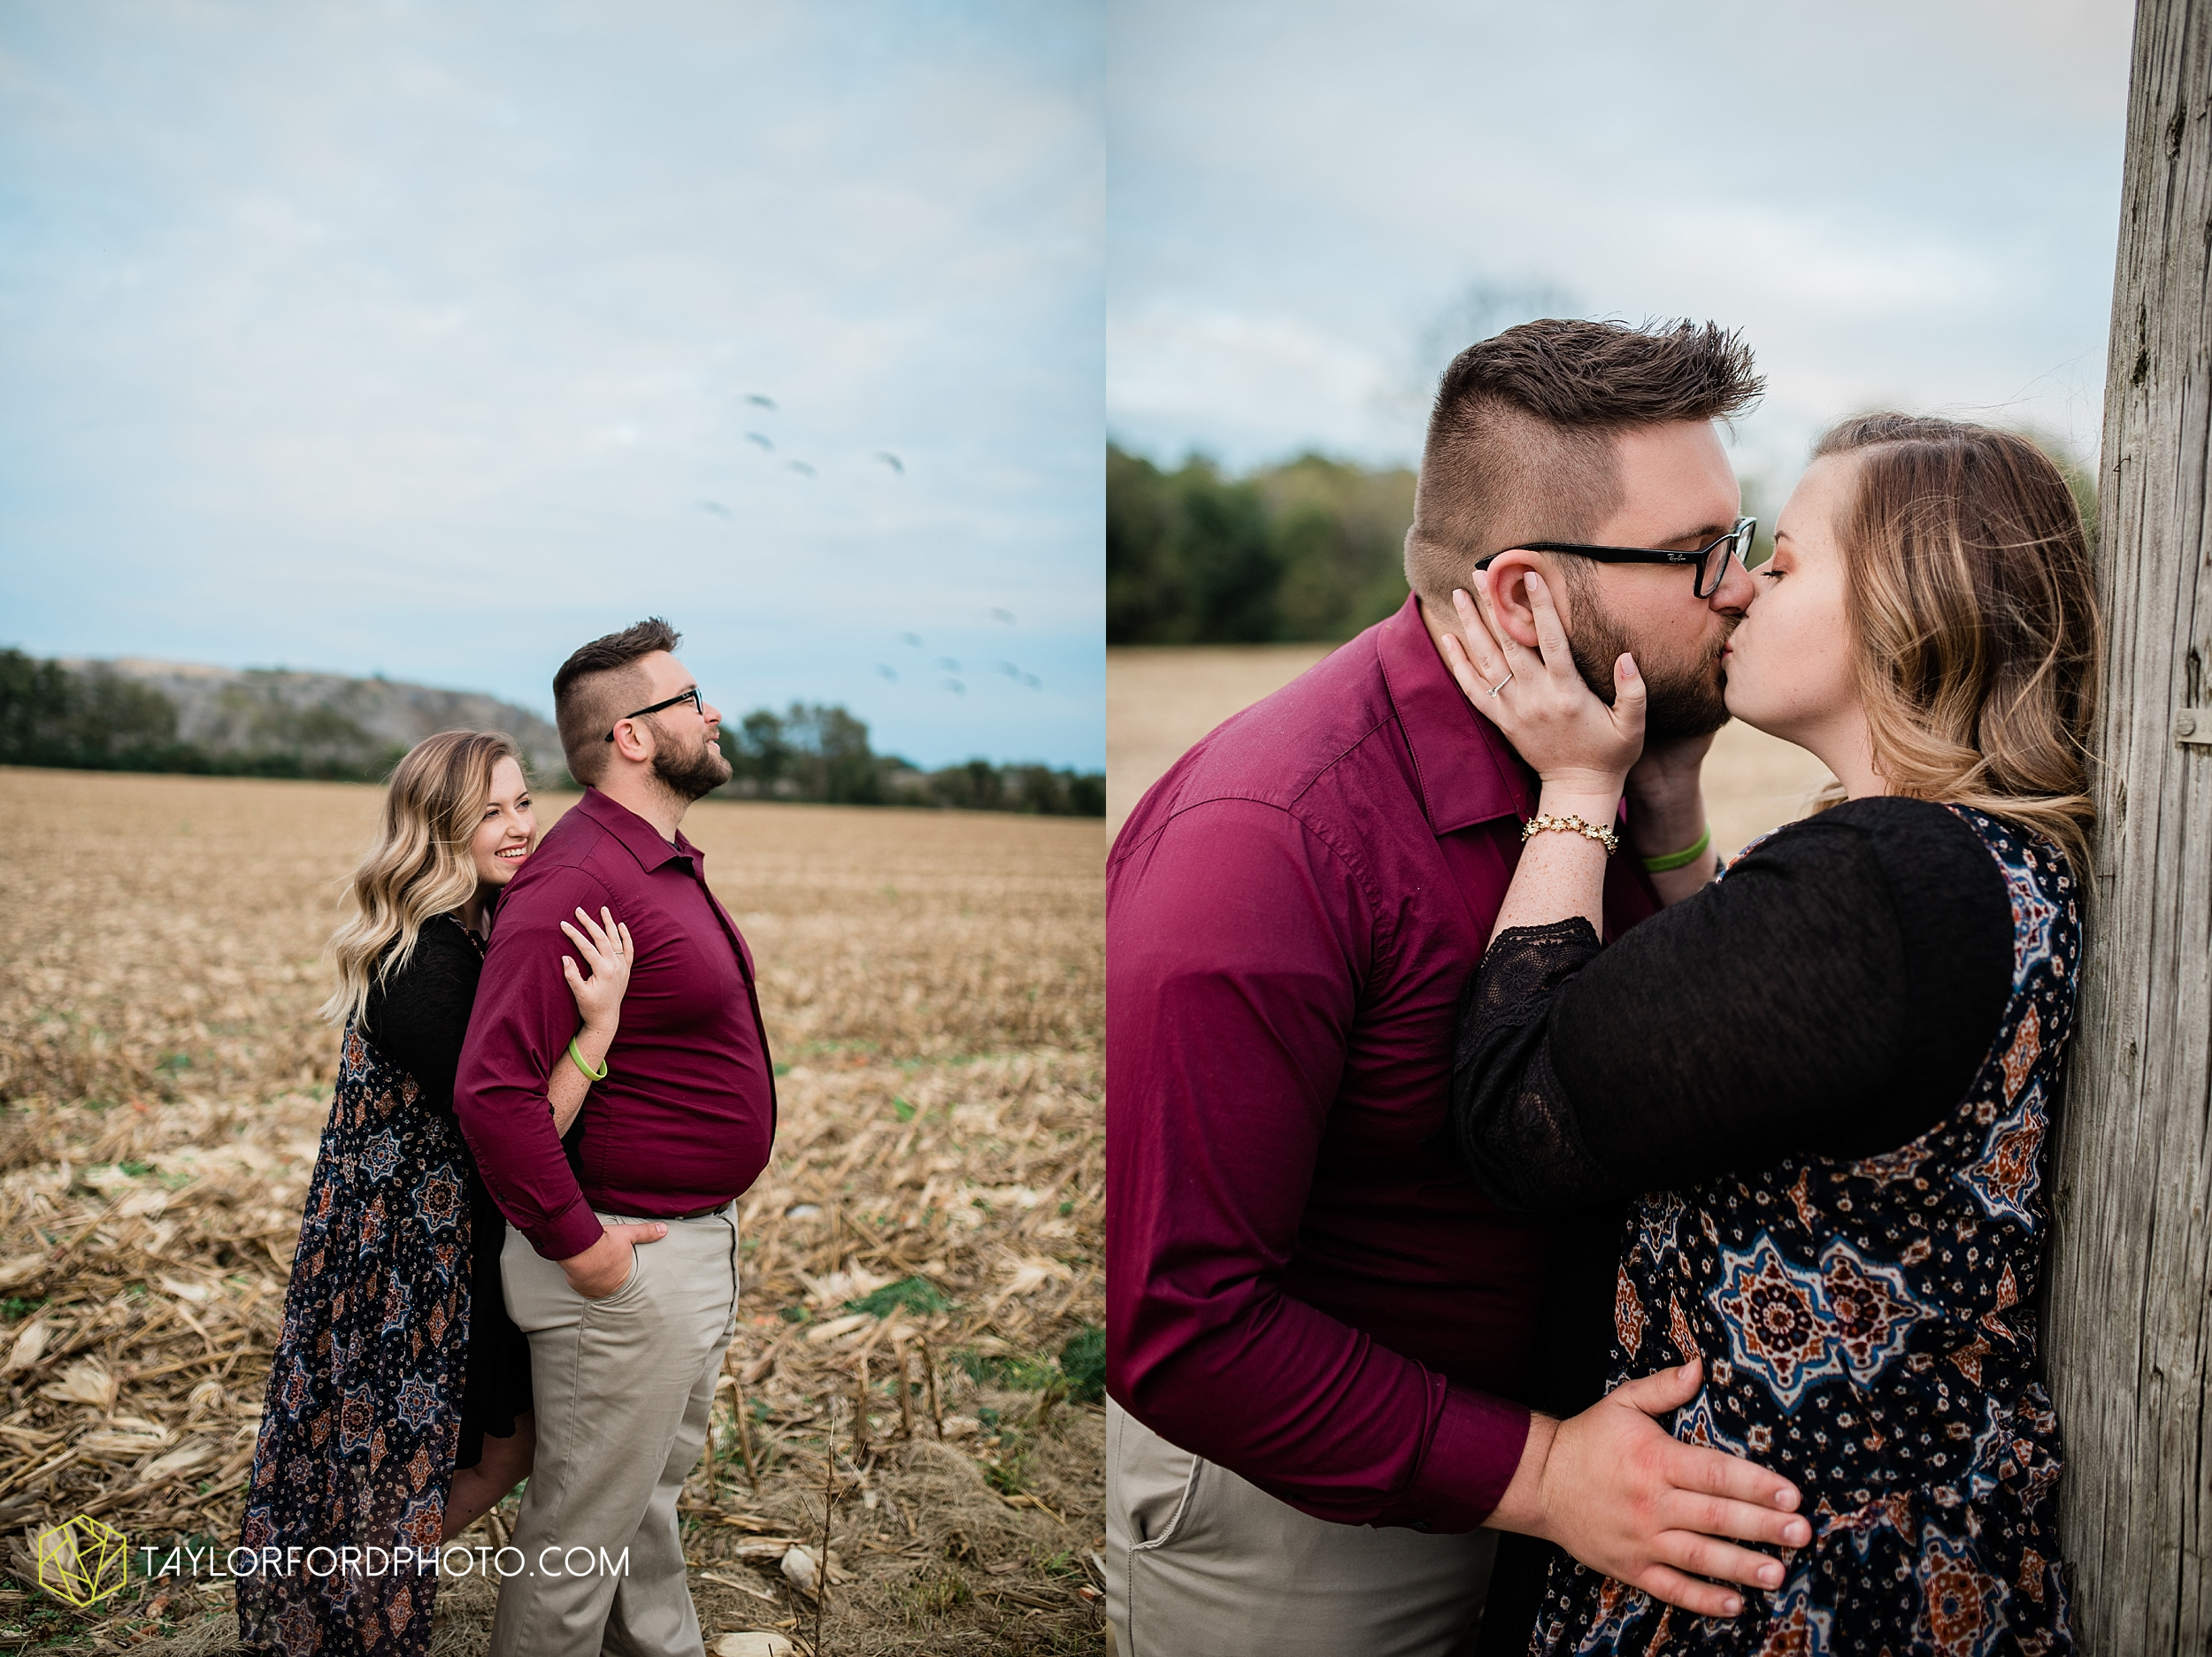 downtown-fort-wayne-engagement-foster-park-bravas-wunderkamer-fox-island-quarry-photographer-taylor-ford-photography_0974.jpg